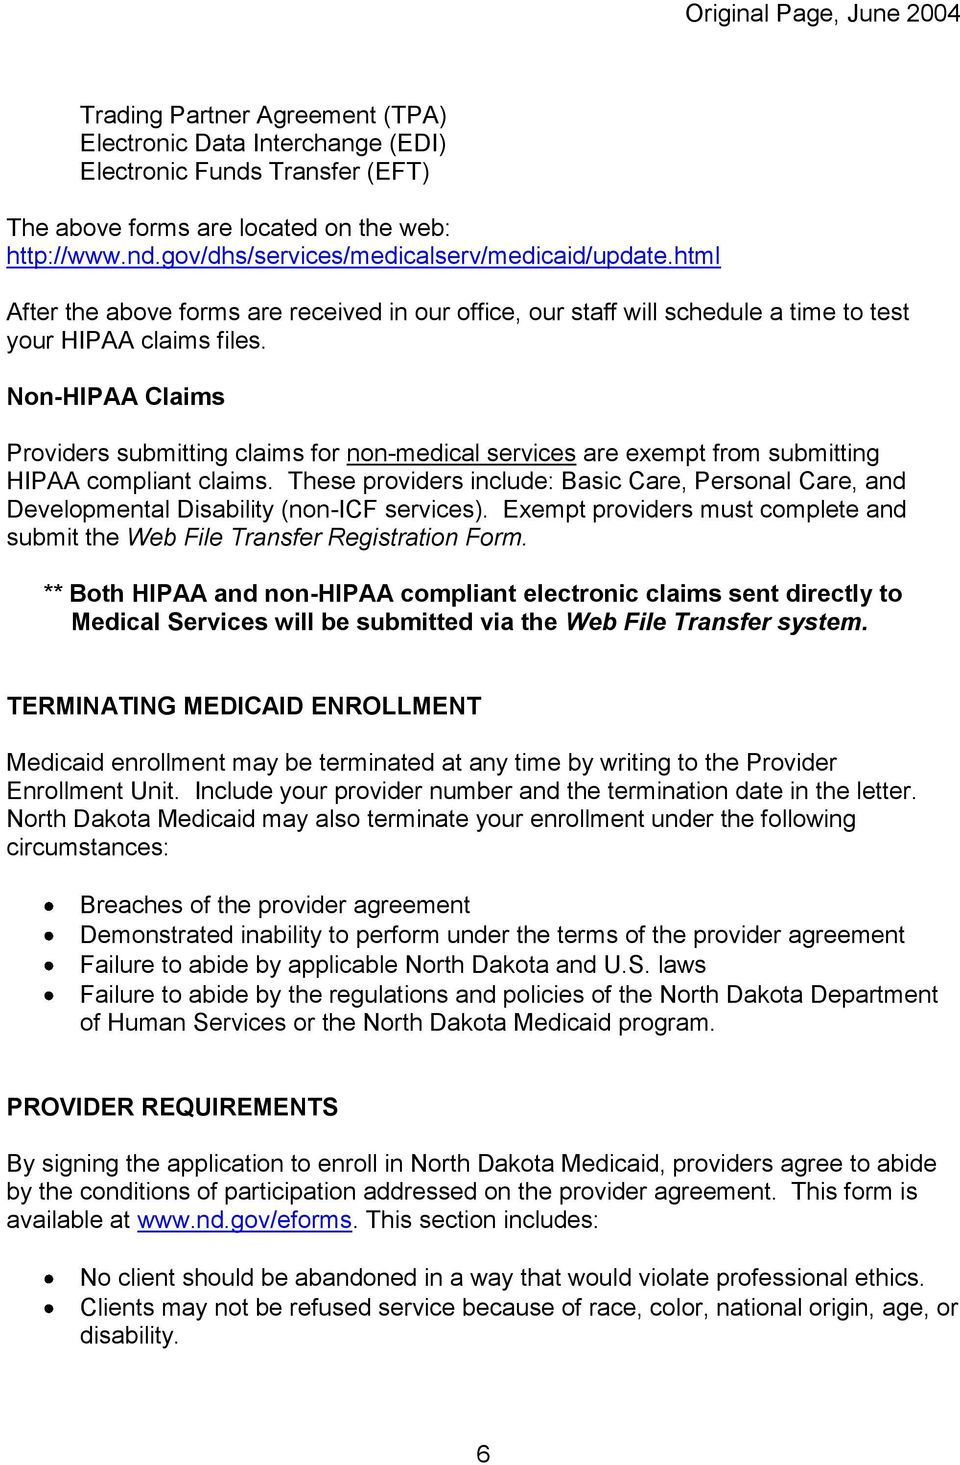 Non-HIPAA Claims Providers submitting claims for non-medical services are exempt from submitting HIPAA compliant claims.